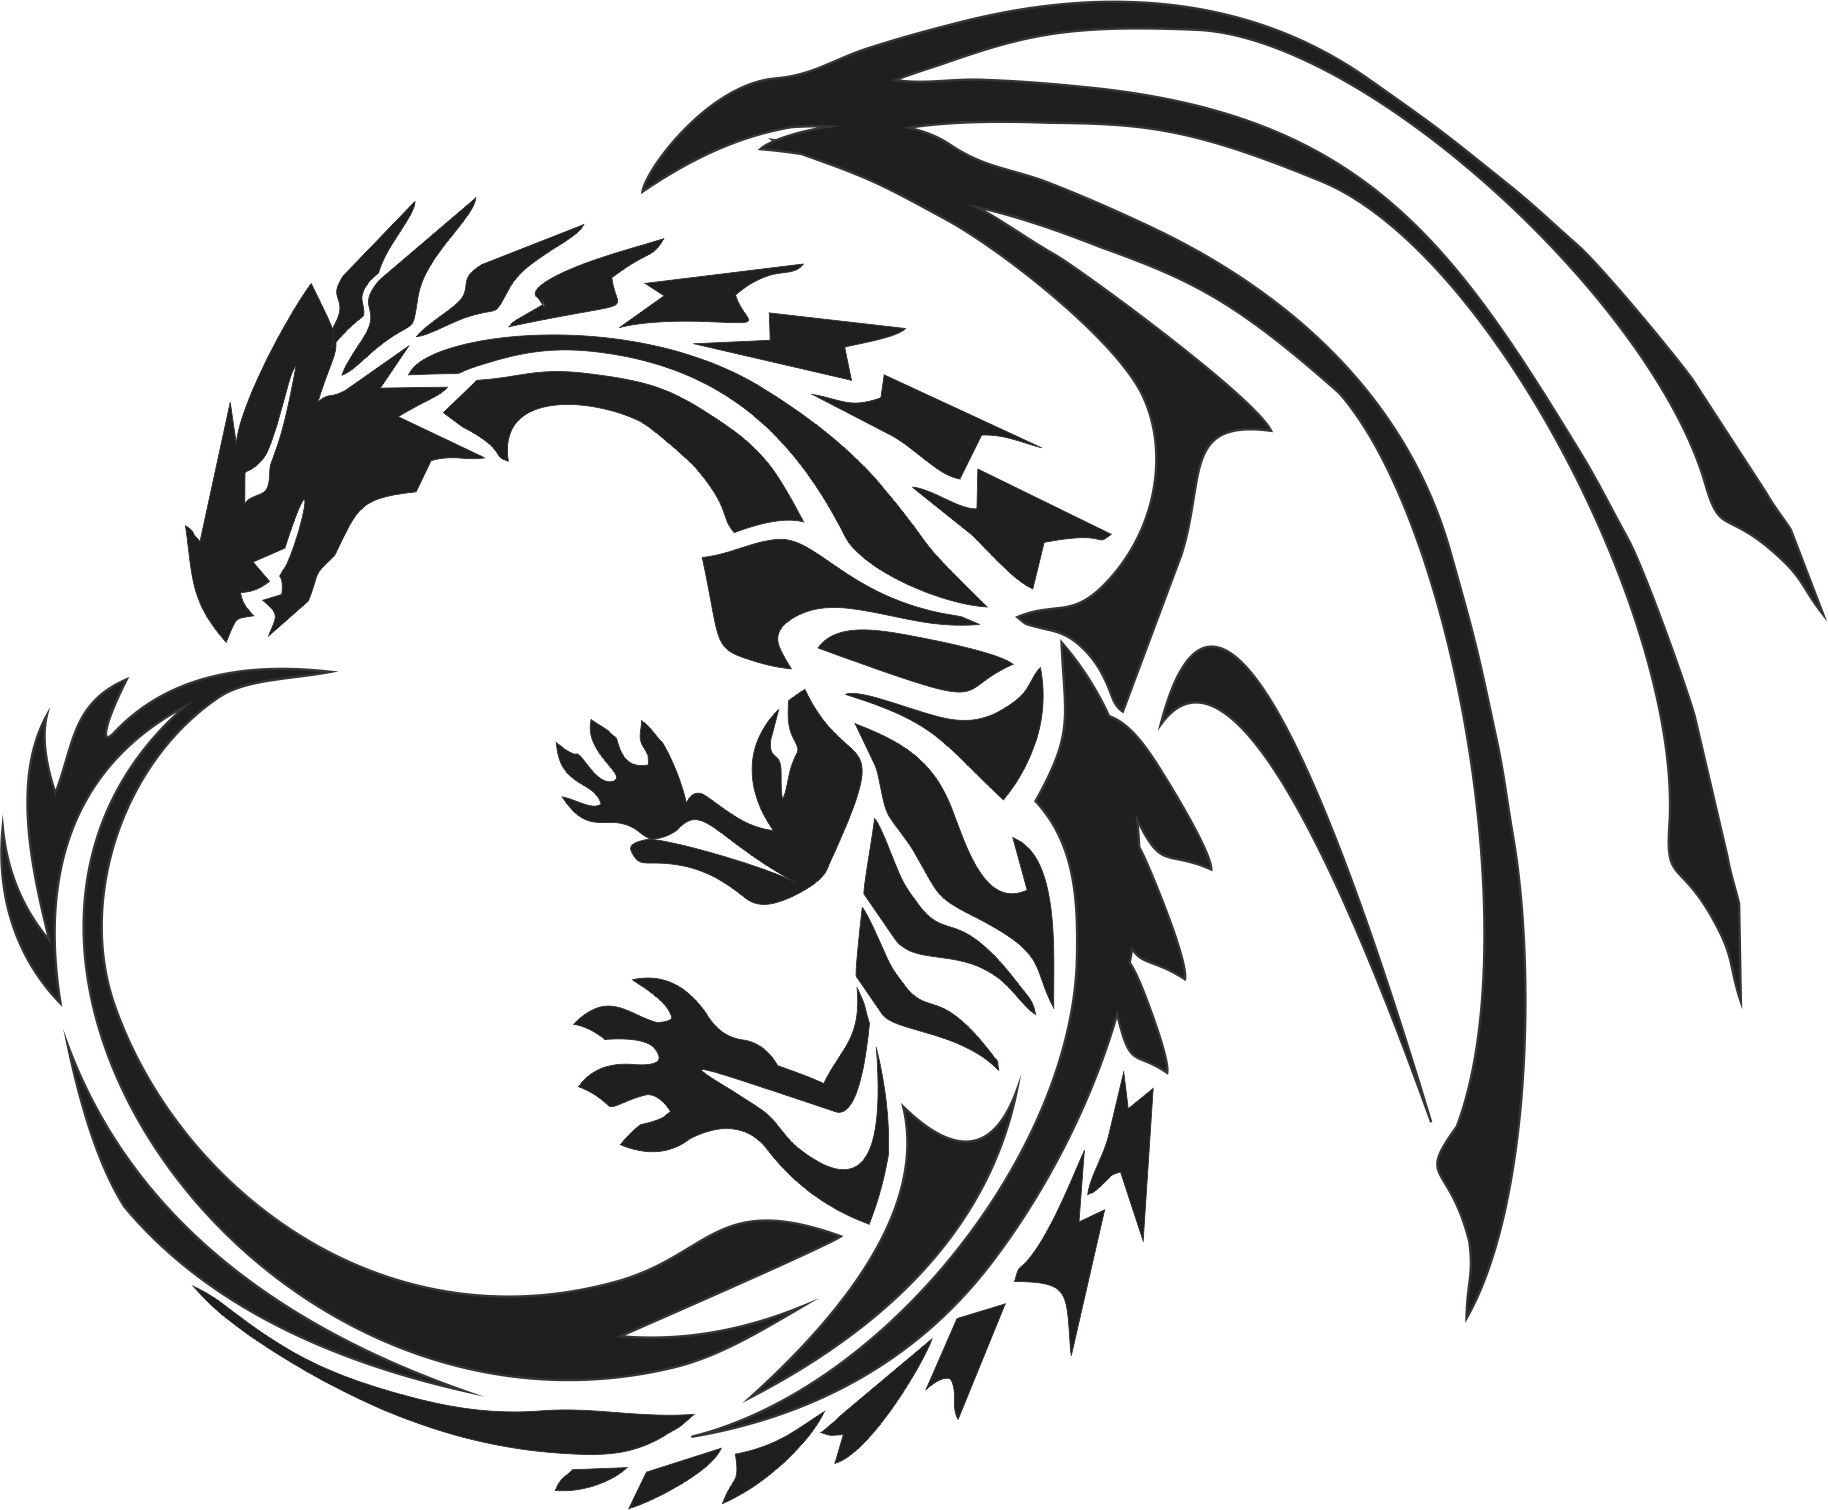 Firebird drawing celtic. Dragon png images free